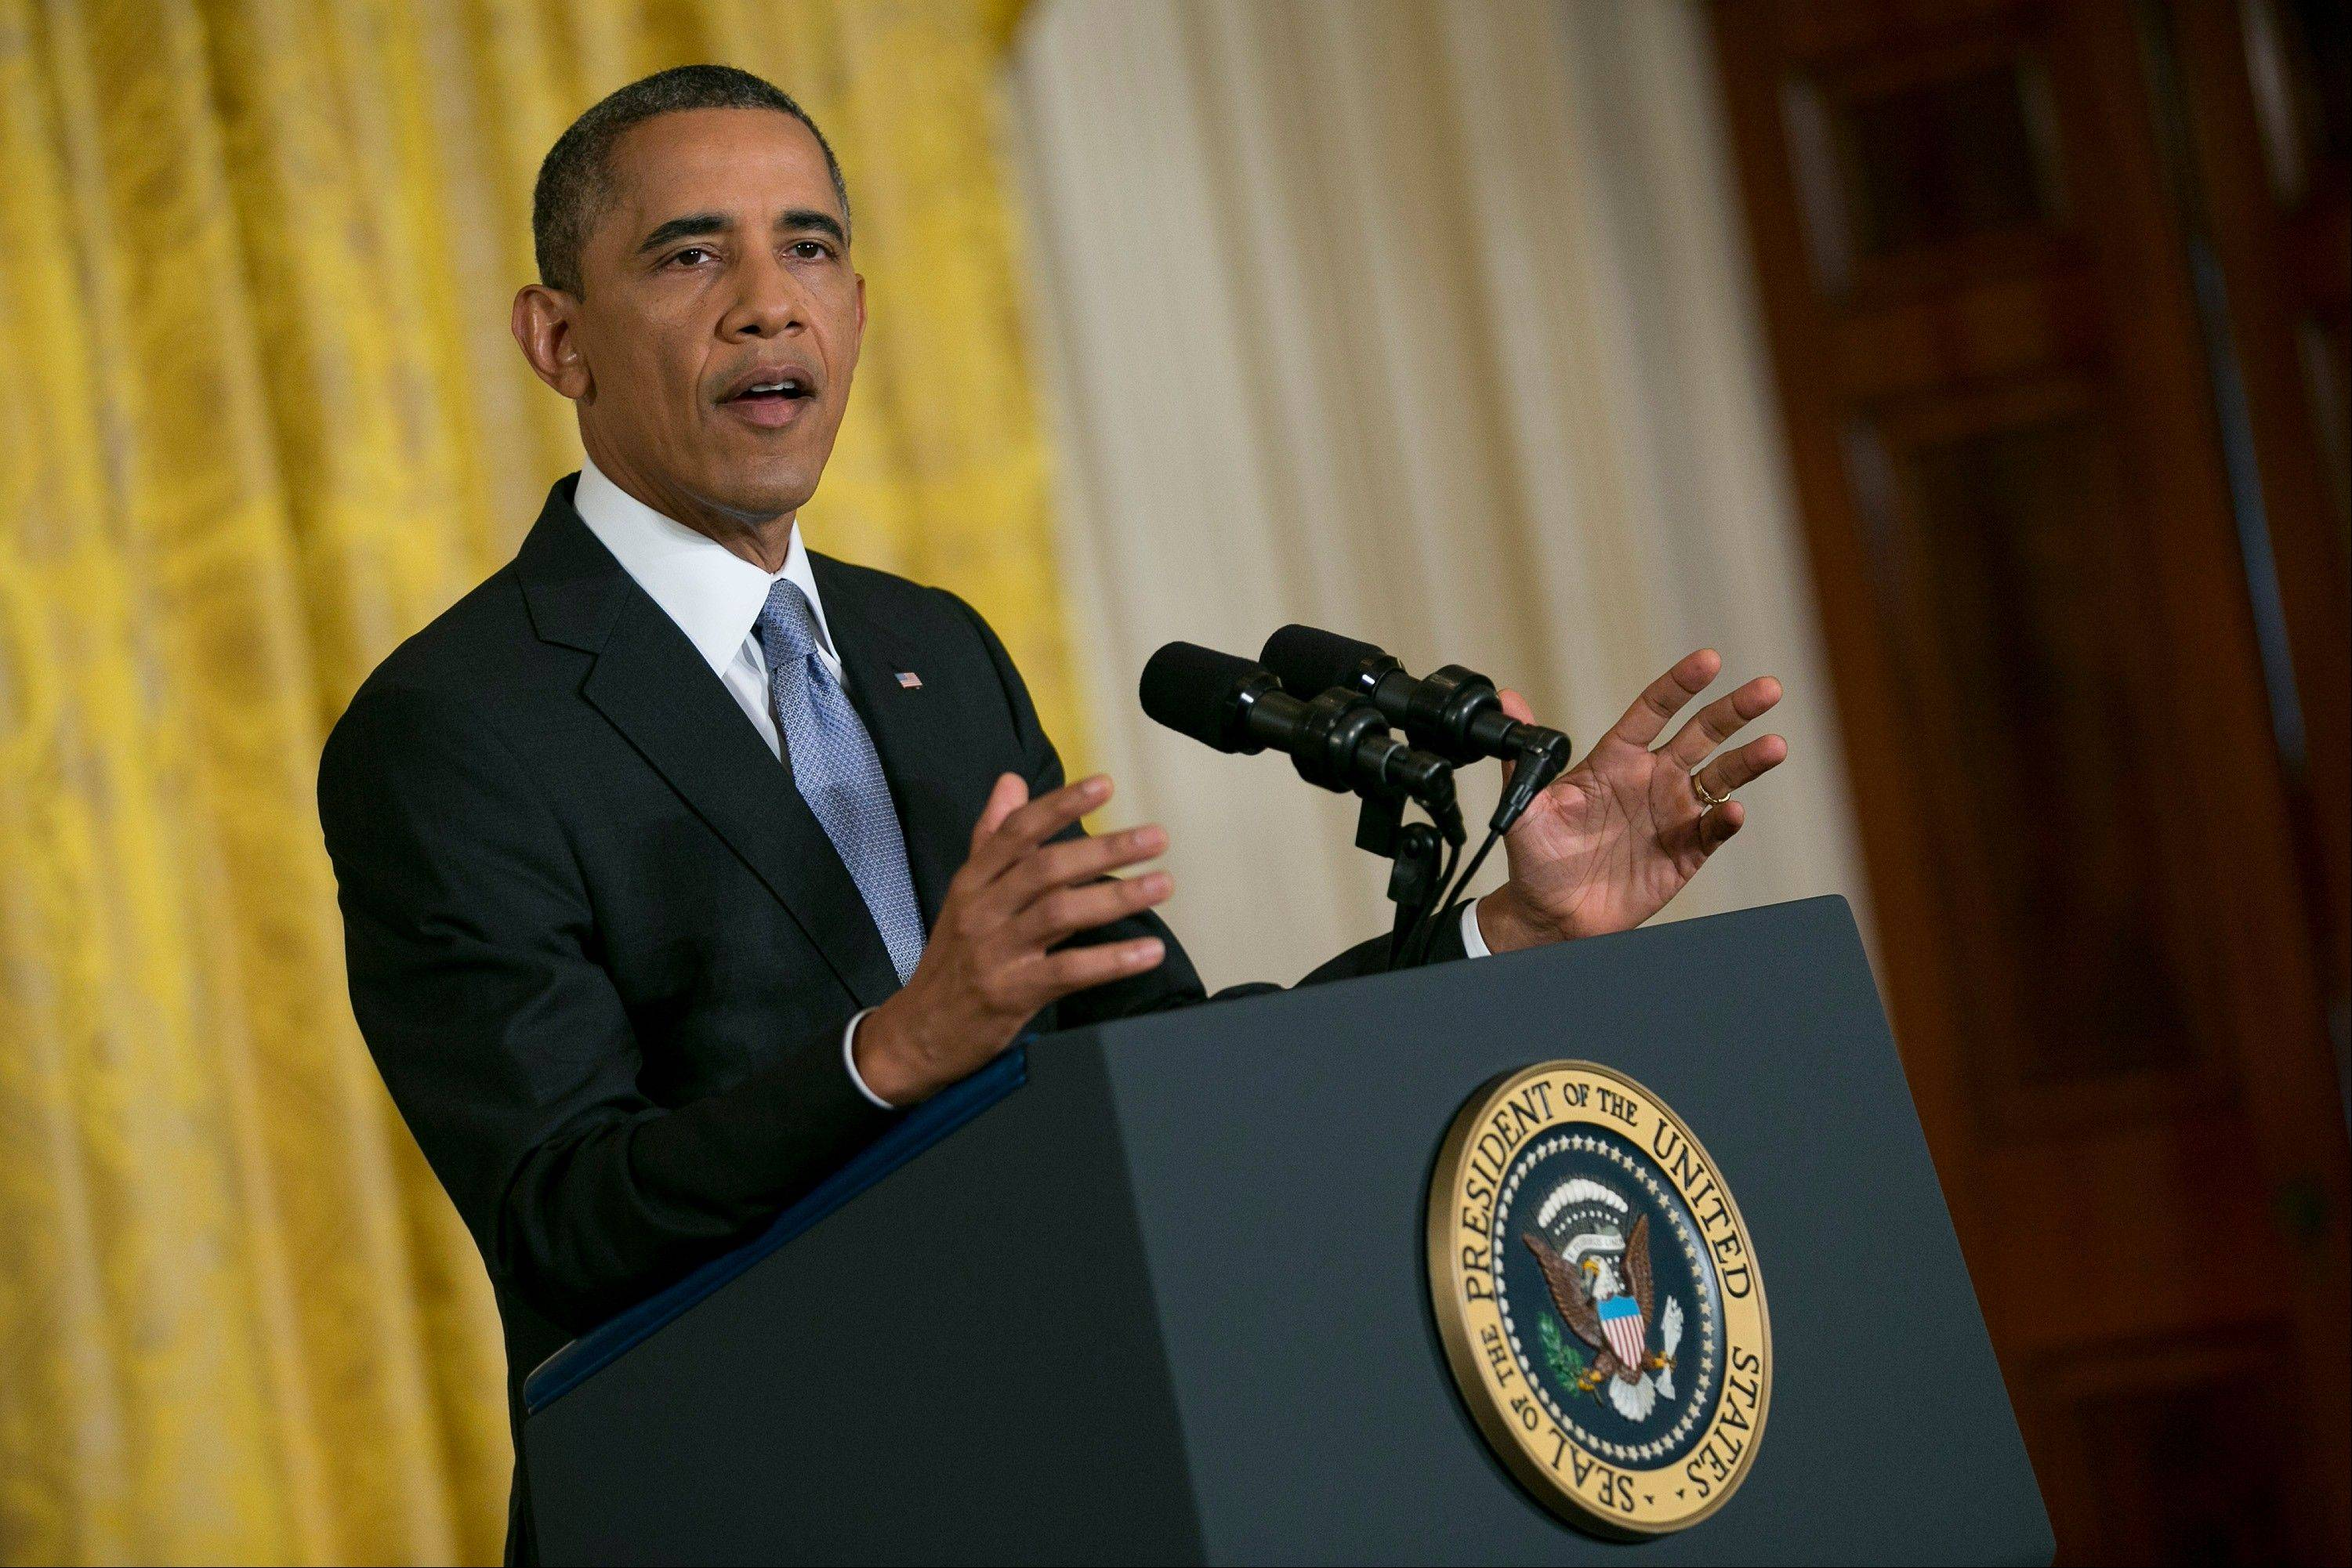 President Obama speaks Friday during a news conference in the East Room of the White House in Washington, D.C.